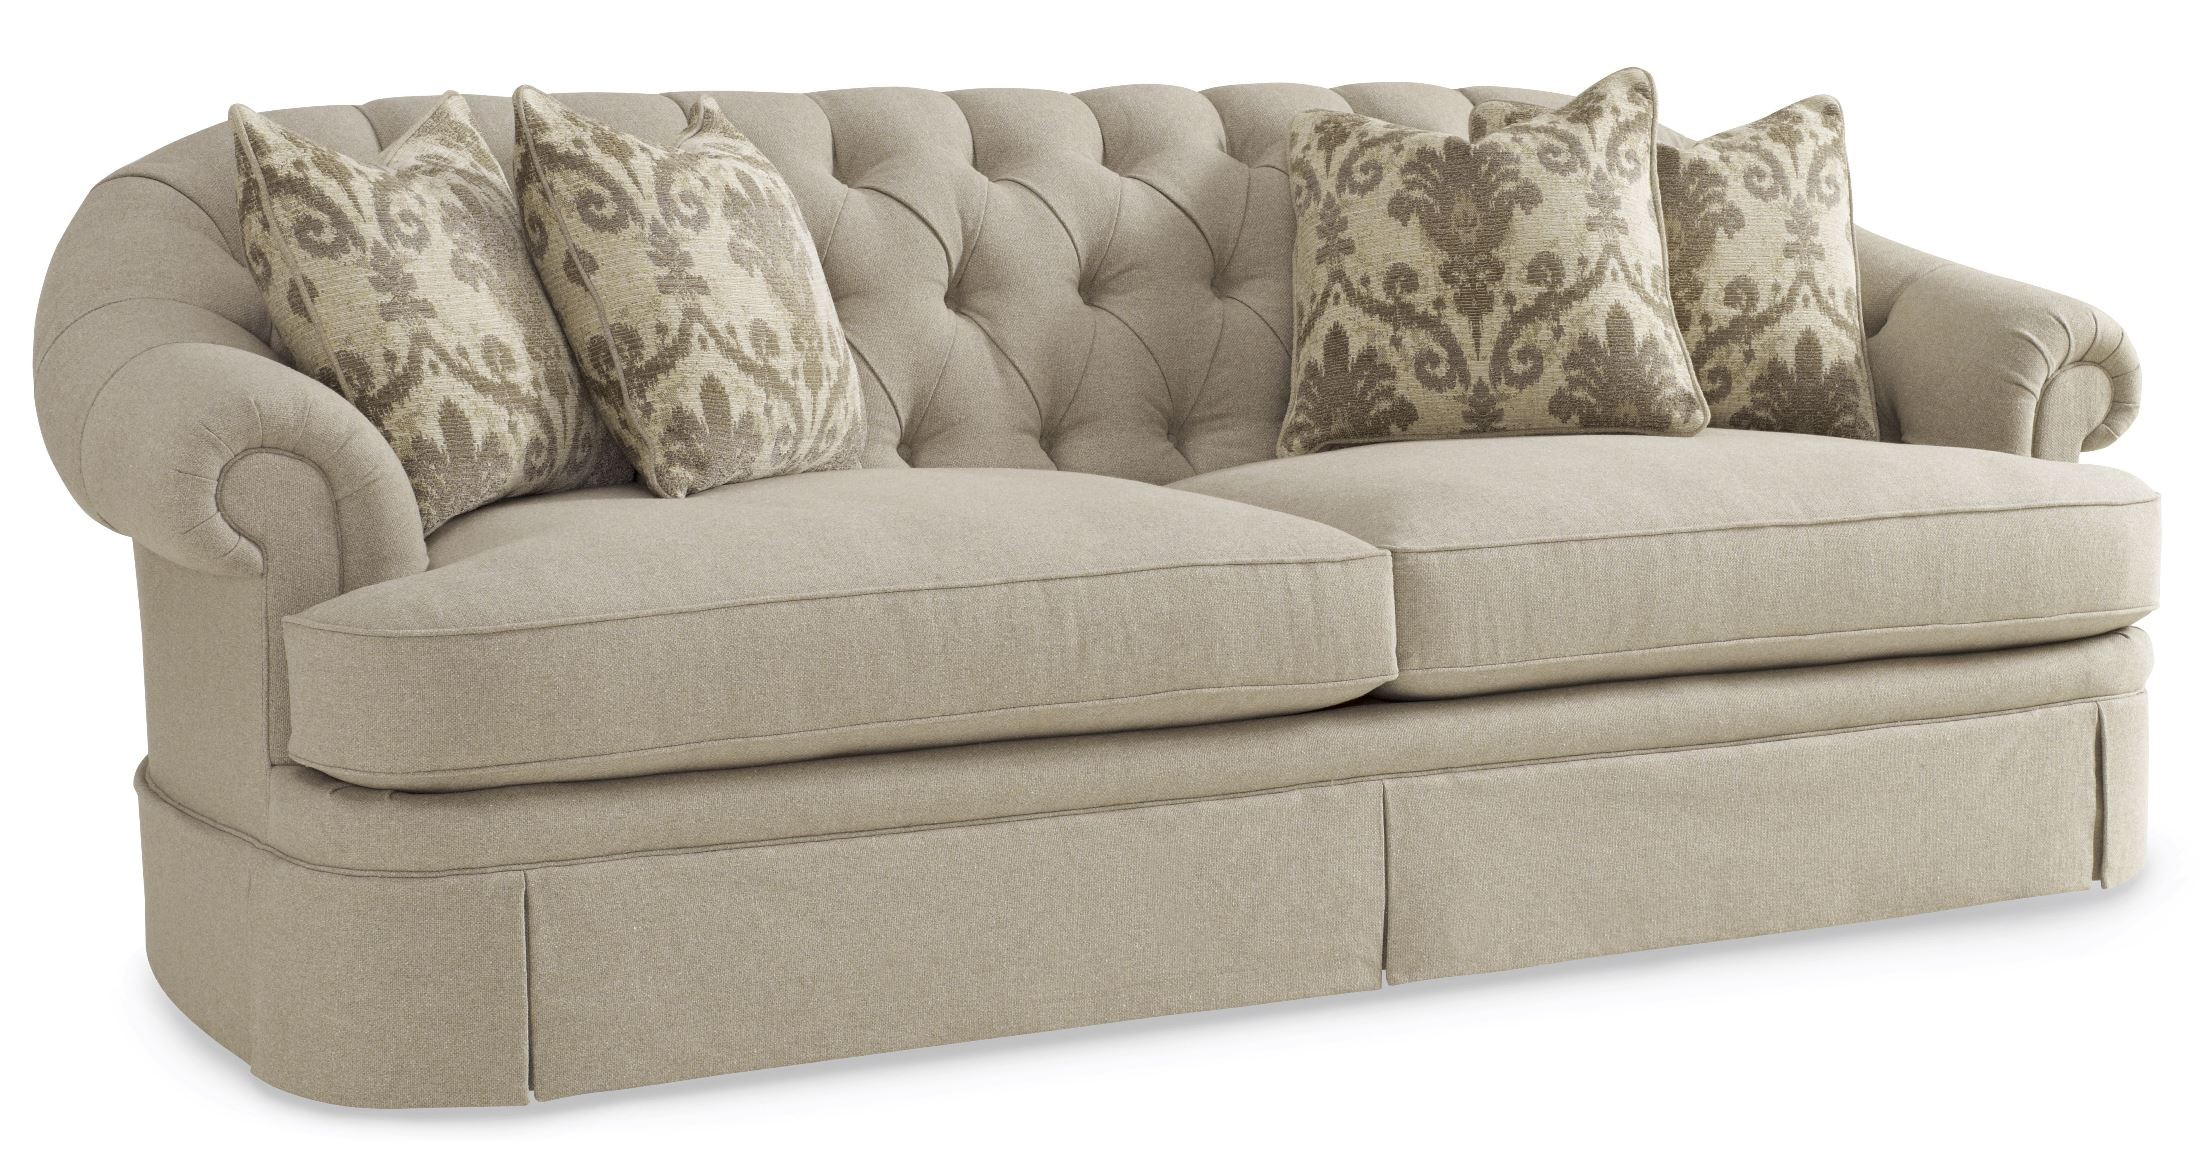 tufted sofa set the king meme collection one upholstered oxford skirted from